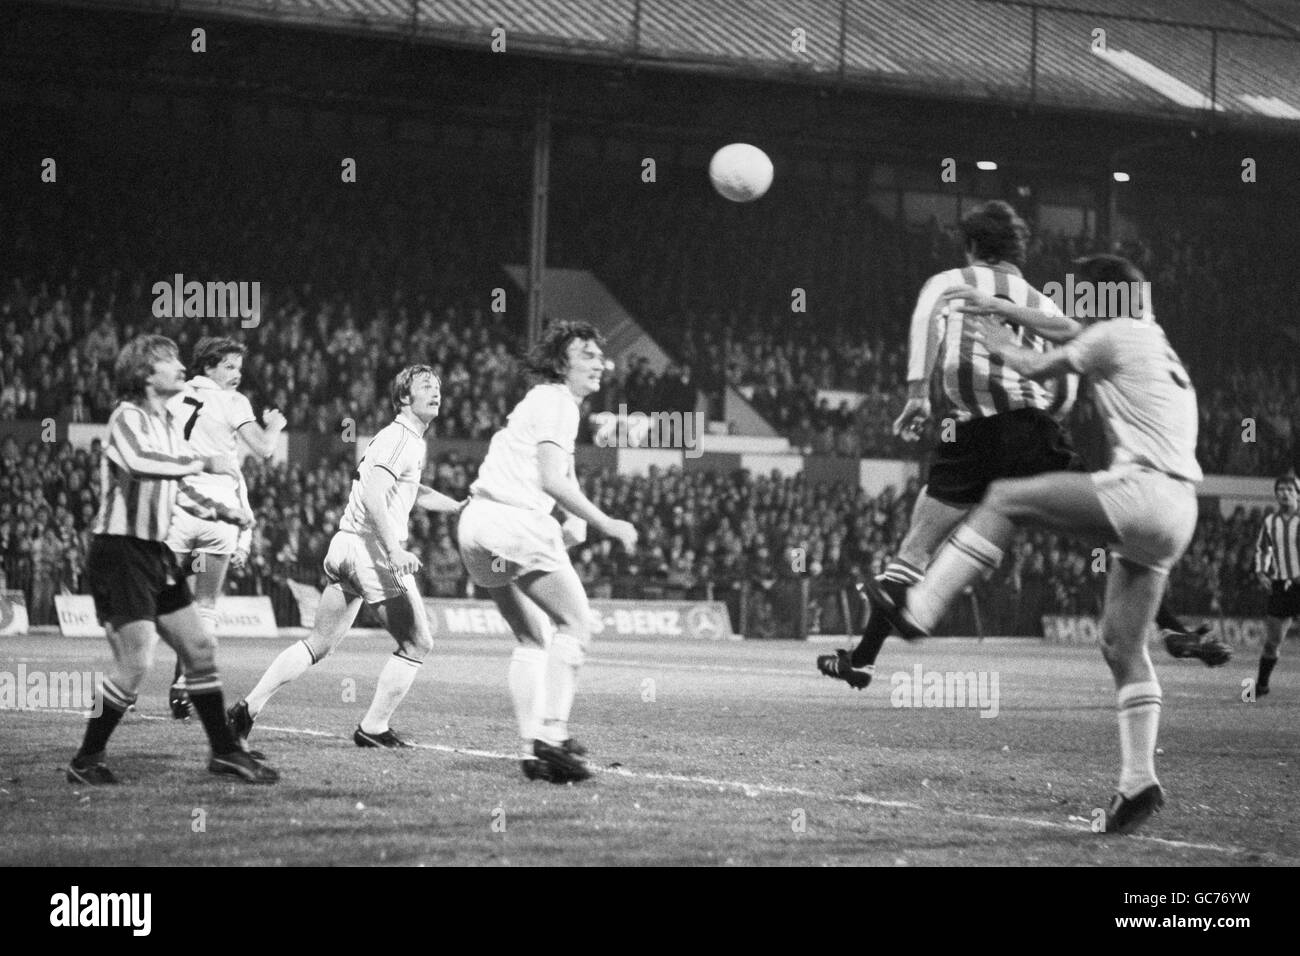 Soccer - League Division Three - Brentford v Sheffield United - Griffin Park - Stock Image